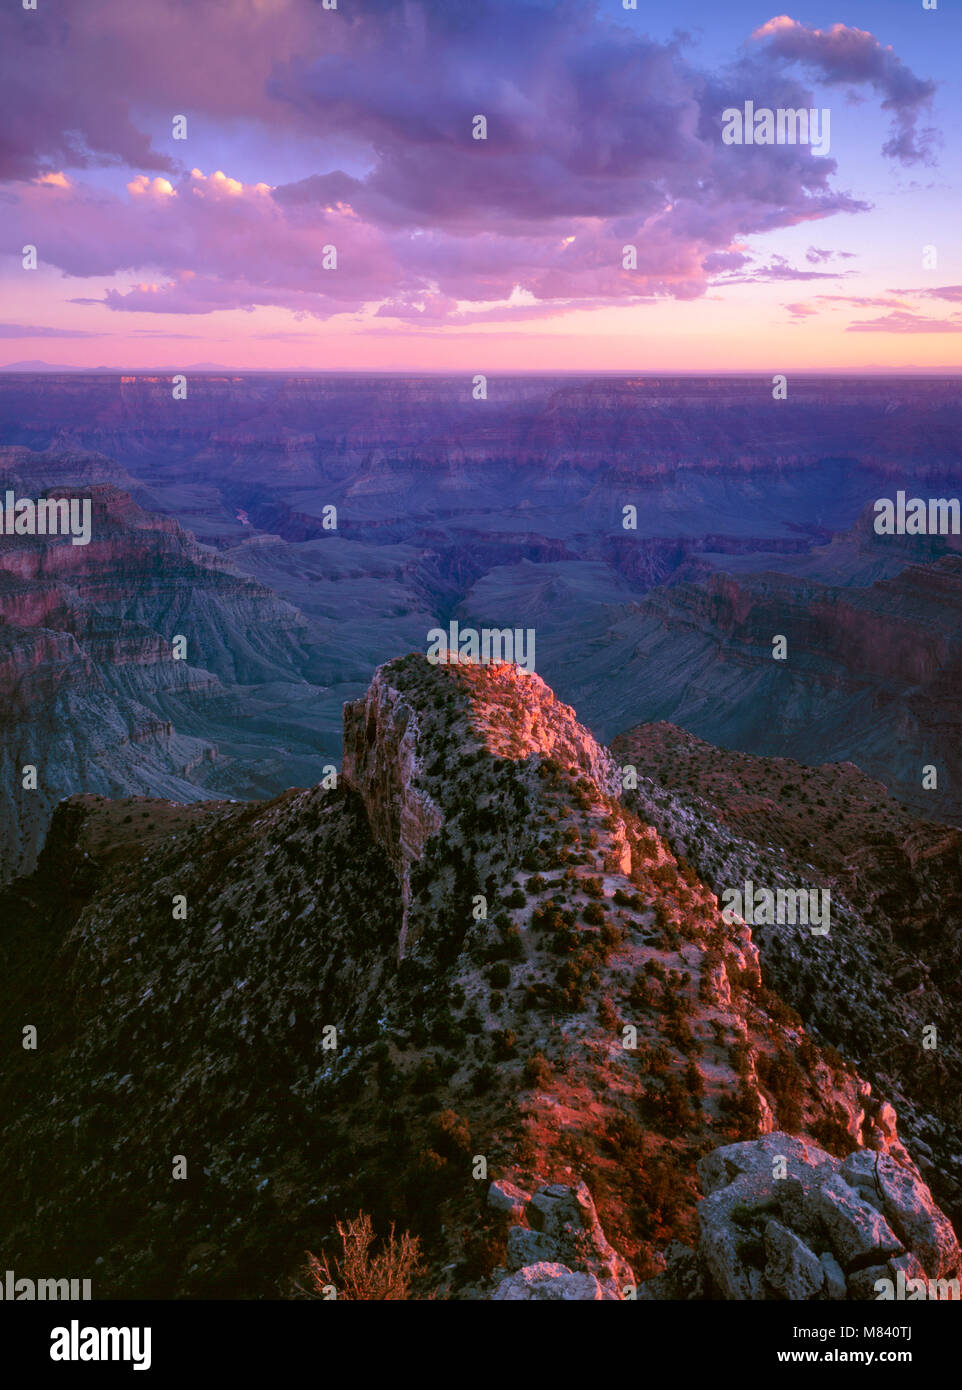 Sunset, Point Sublime, Grand Canyon National Park, Arizona - Stock Image